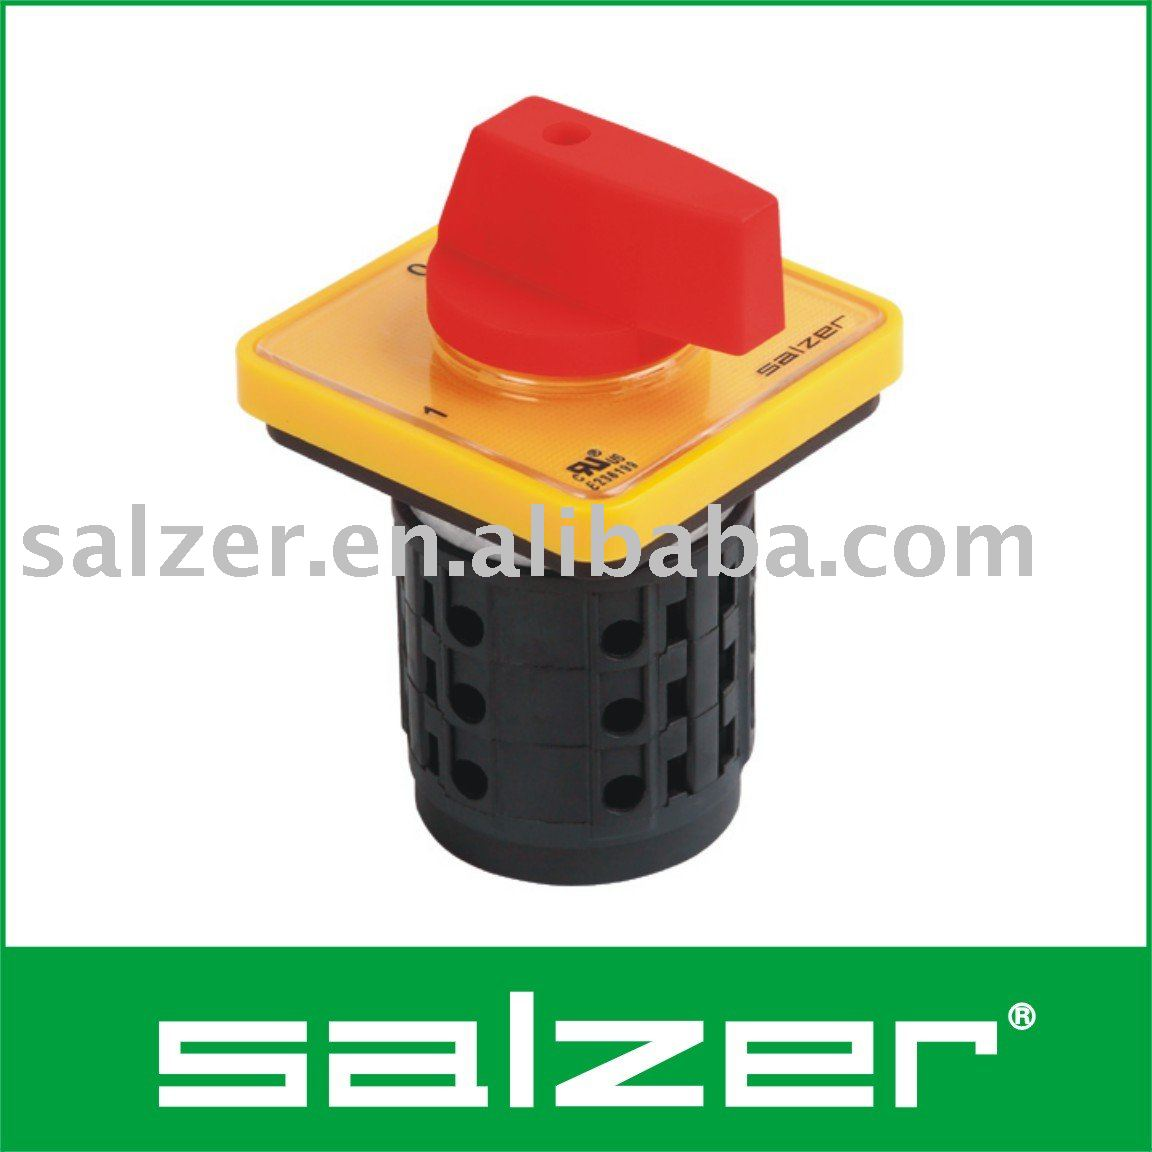 Salzer AC Change over switch UL File sa16 a b, sa16 a b suppliers and manufacturers at alibaba com salzer switches wiring diagram at gsmx.co